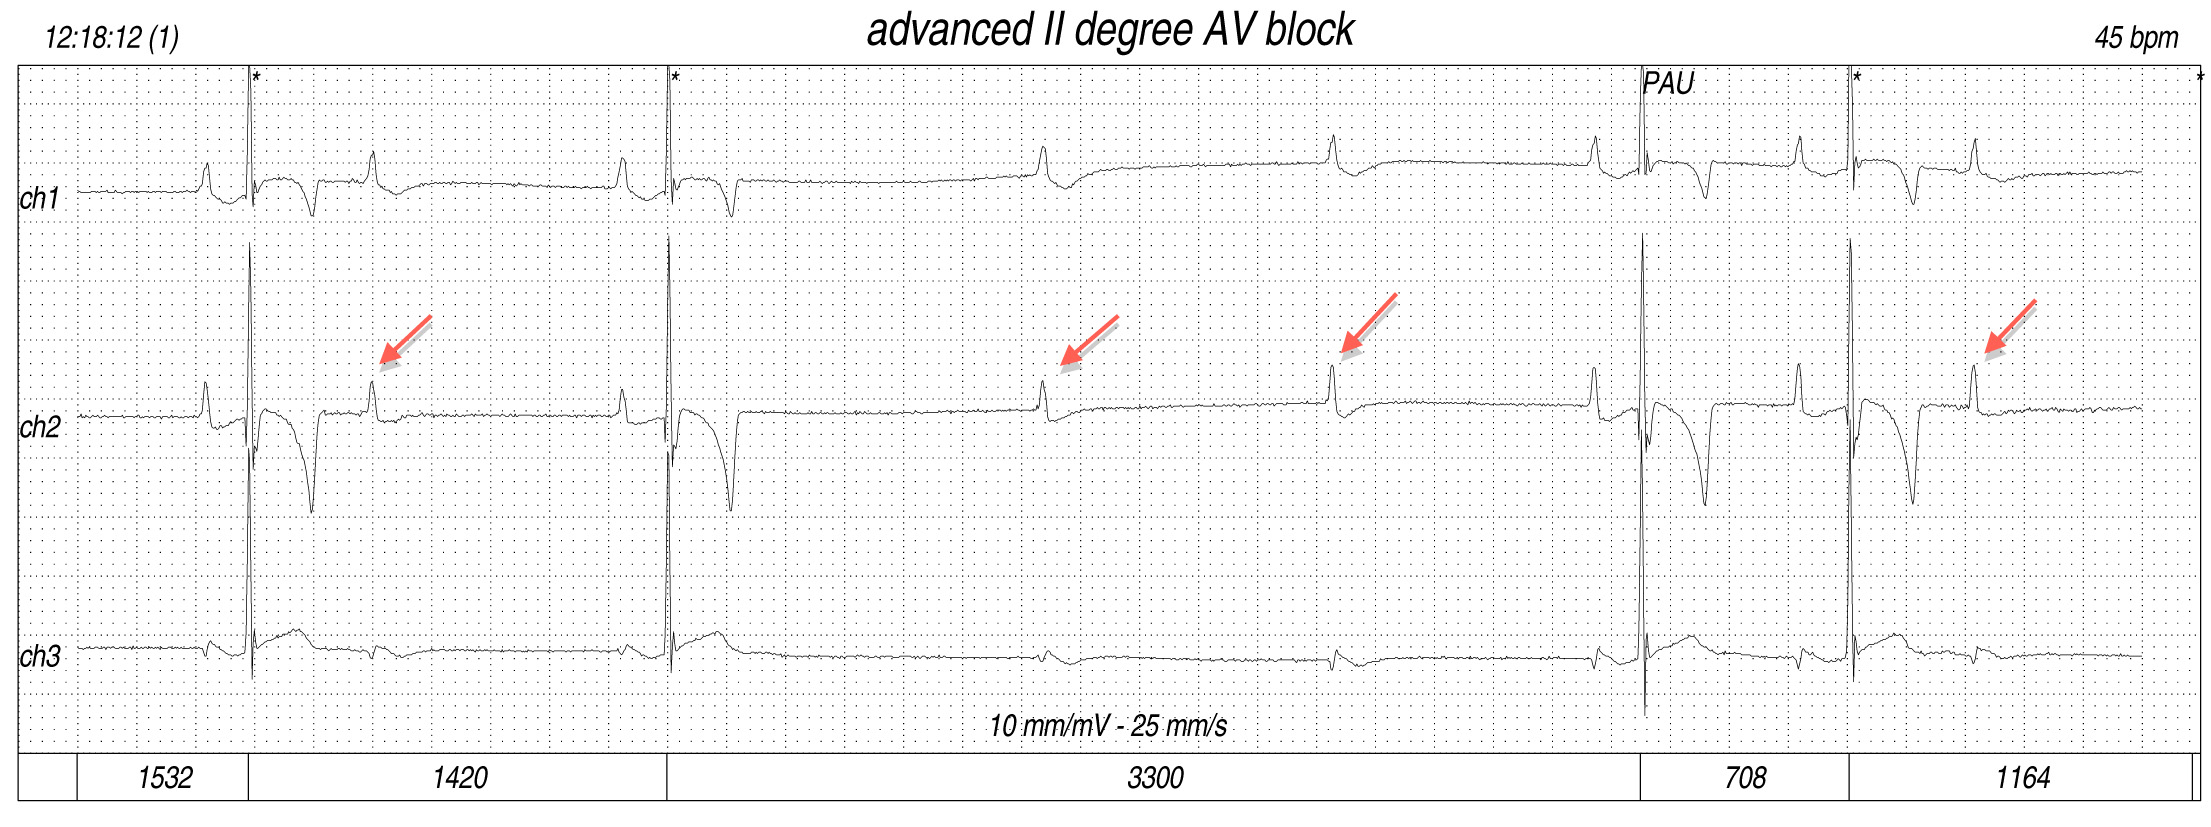 Pacemaker placement for treatment of advanced second